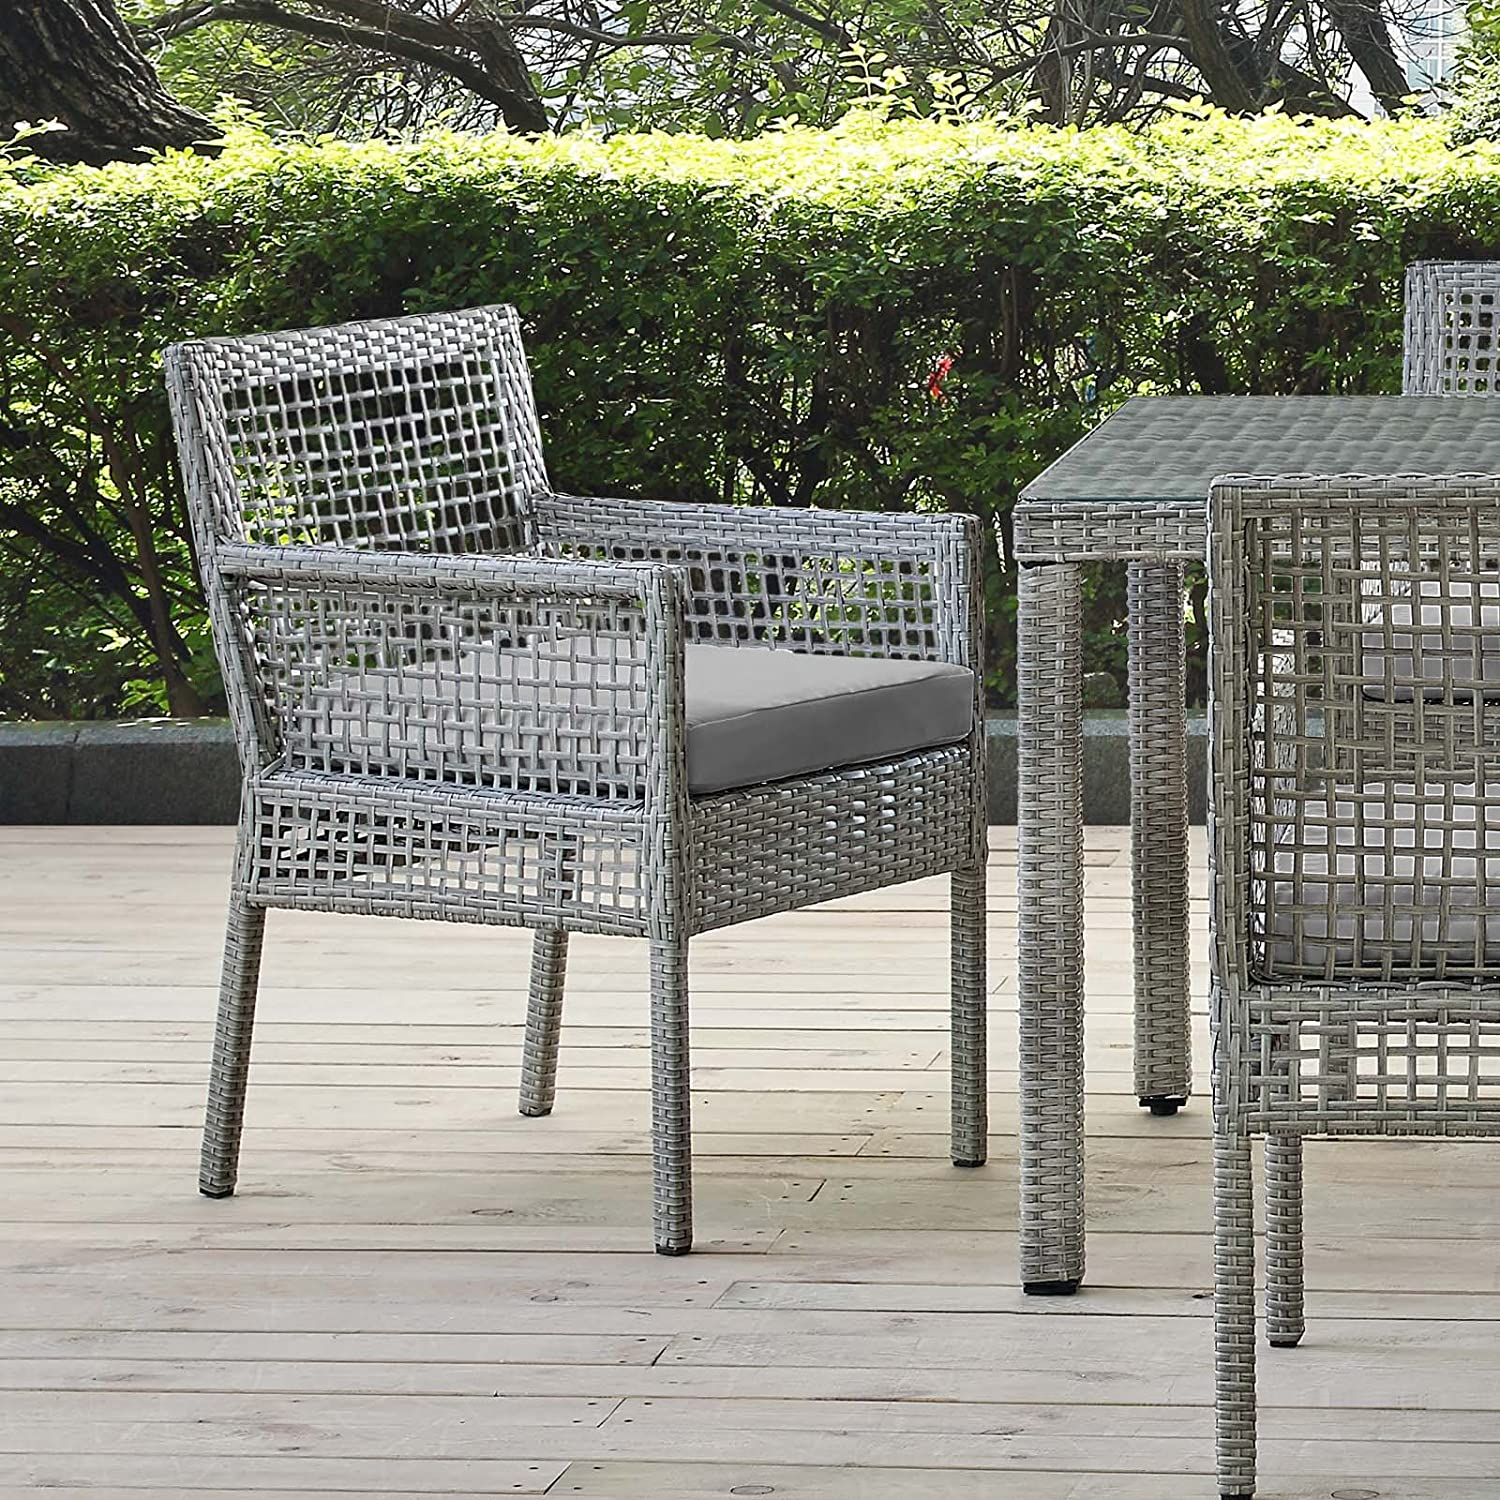 Modway Aura Wicker Rattan Outdoor Patio Dining Arm Chair with Cushion in Gray Gray : Garden & Outdoor